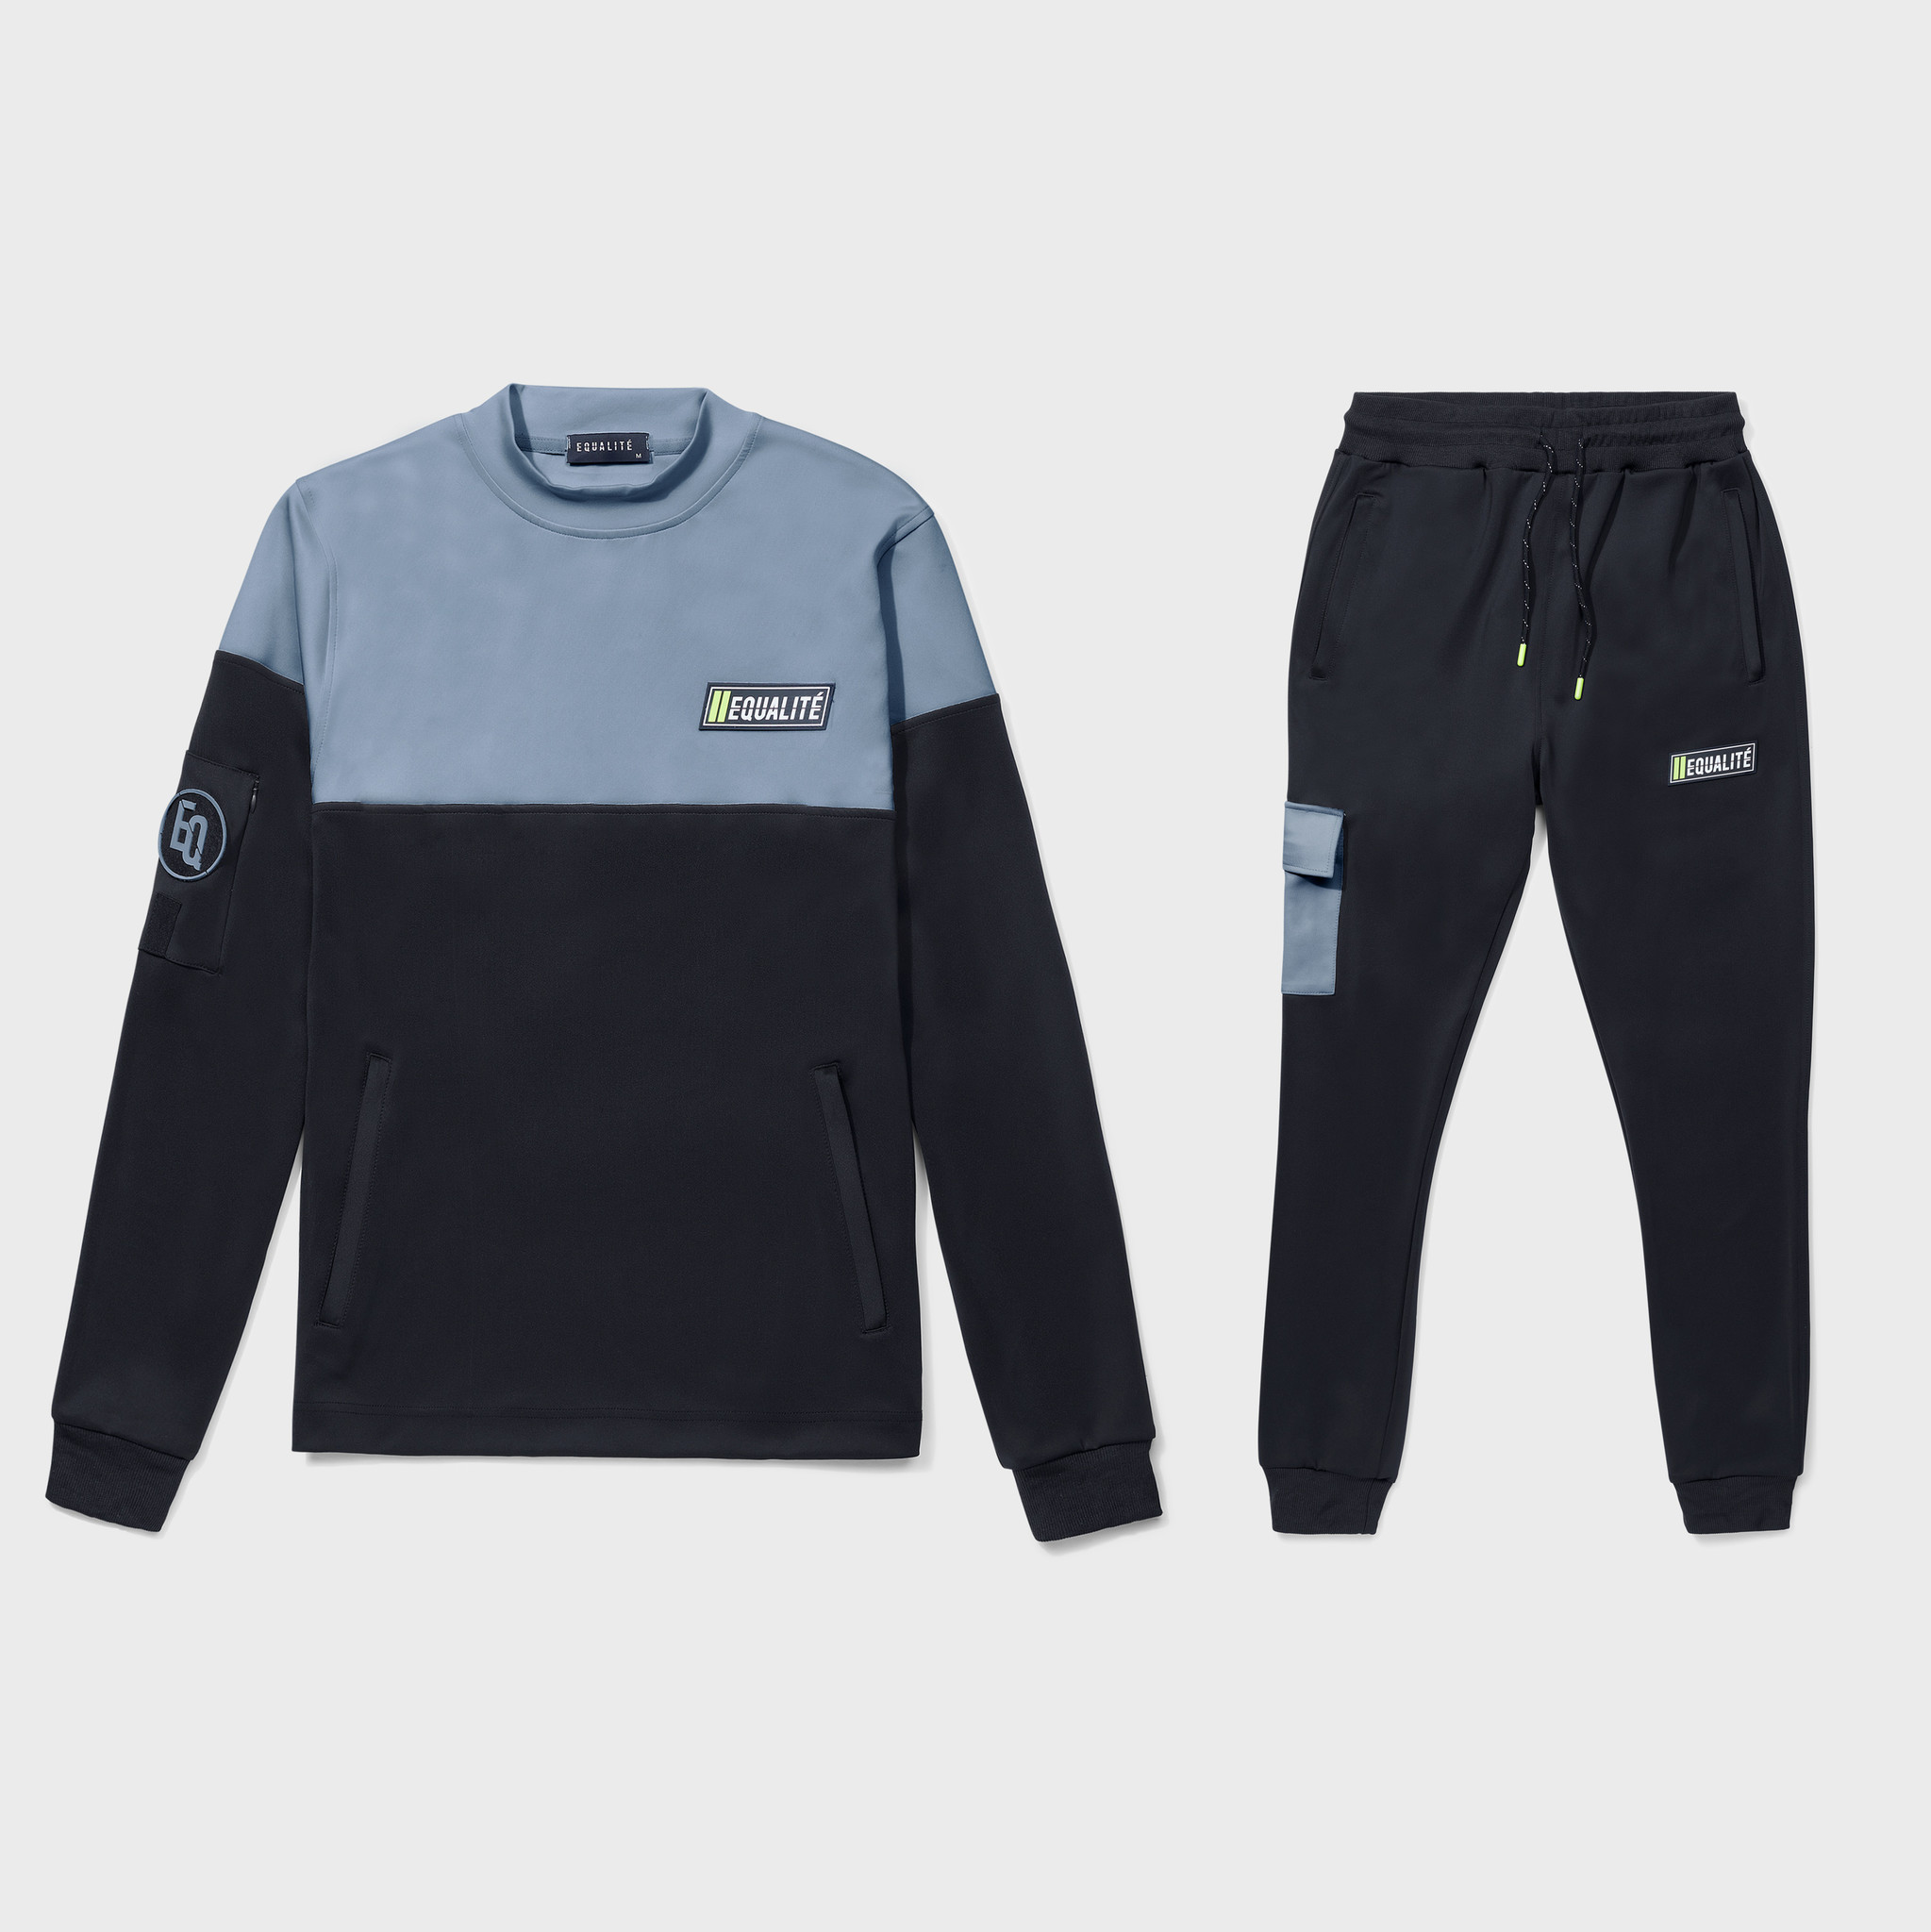 FUTURE POLYESTER TRACKSUIT BLACK & GREY-1